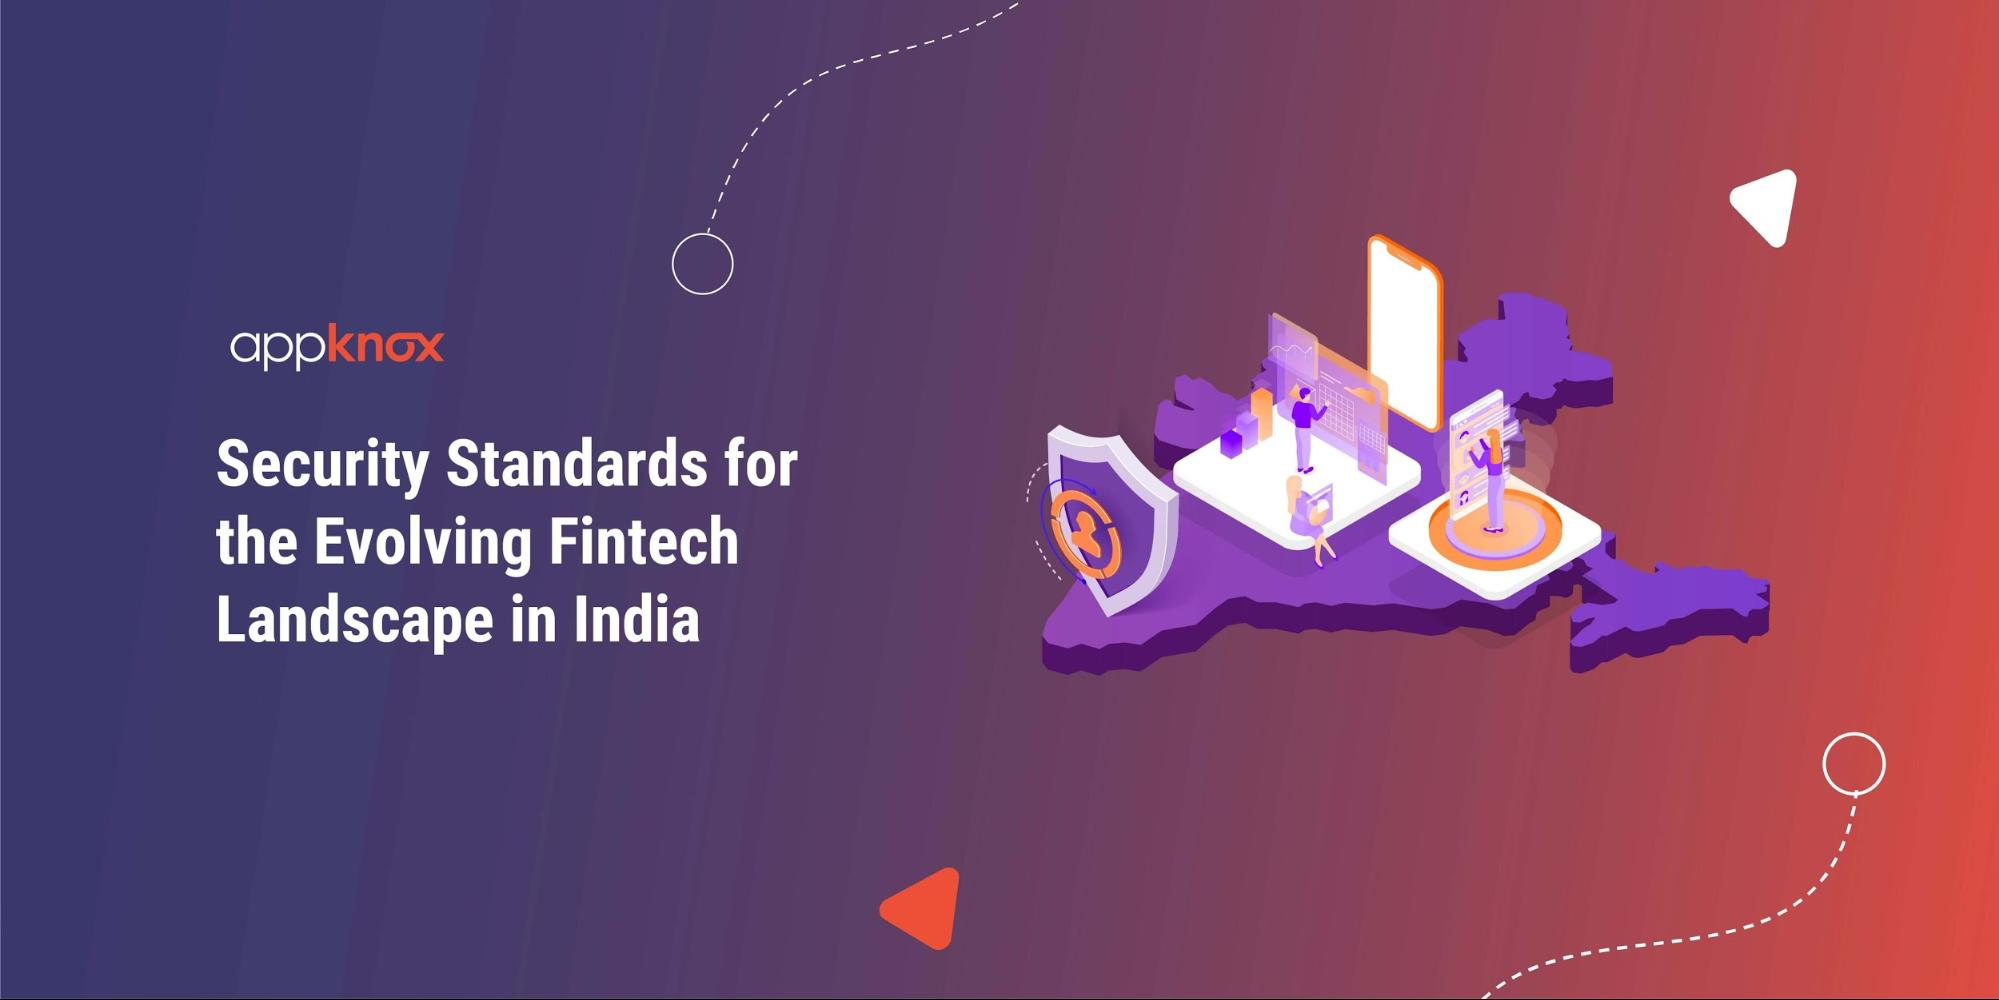 Security Standards for the Evolving Fintech Landscape in India